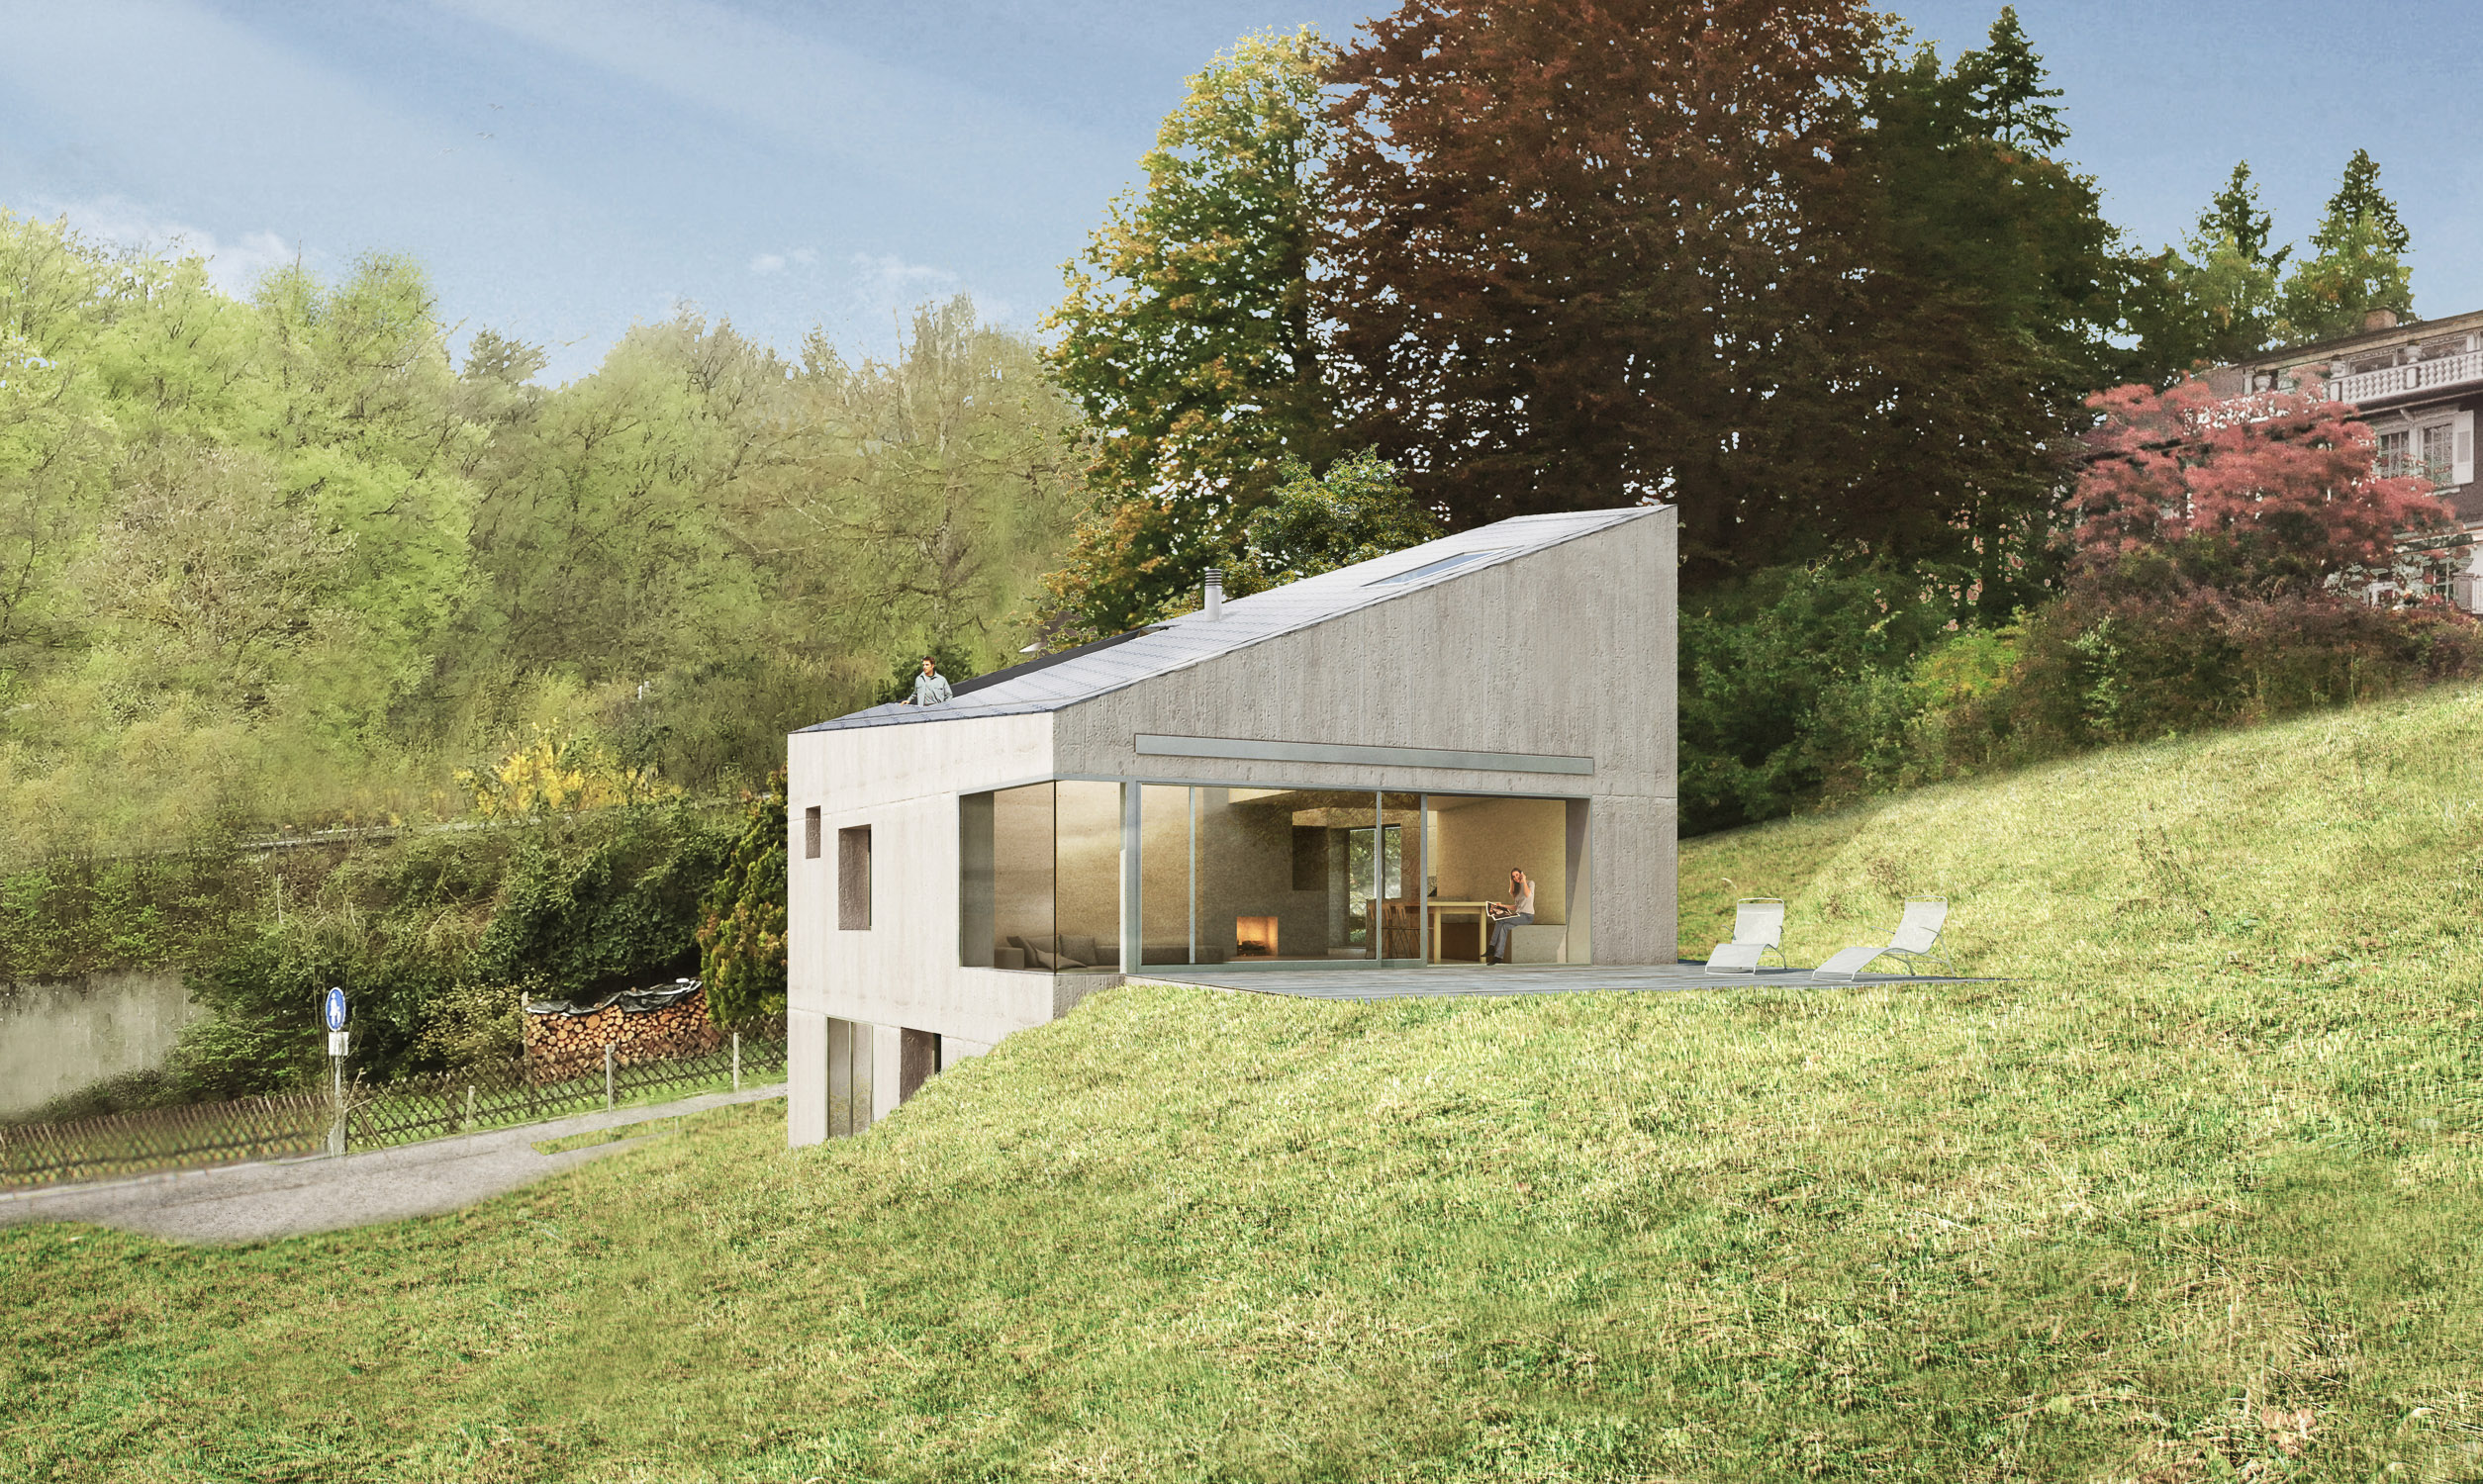 Architektur Rendering Welches Programm Projekte Wezel Architektur